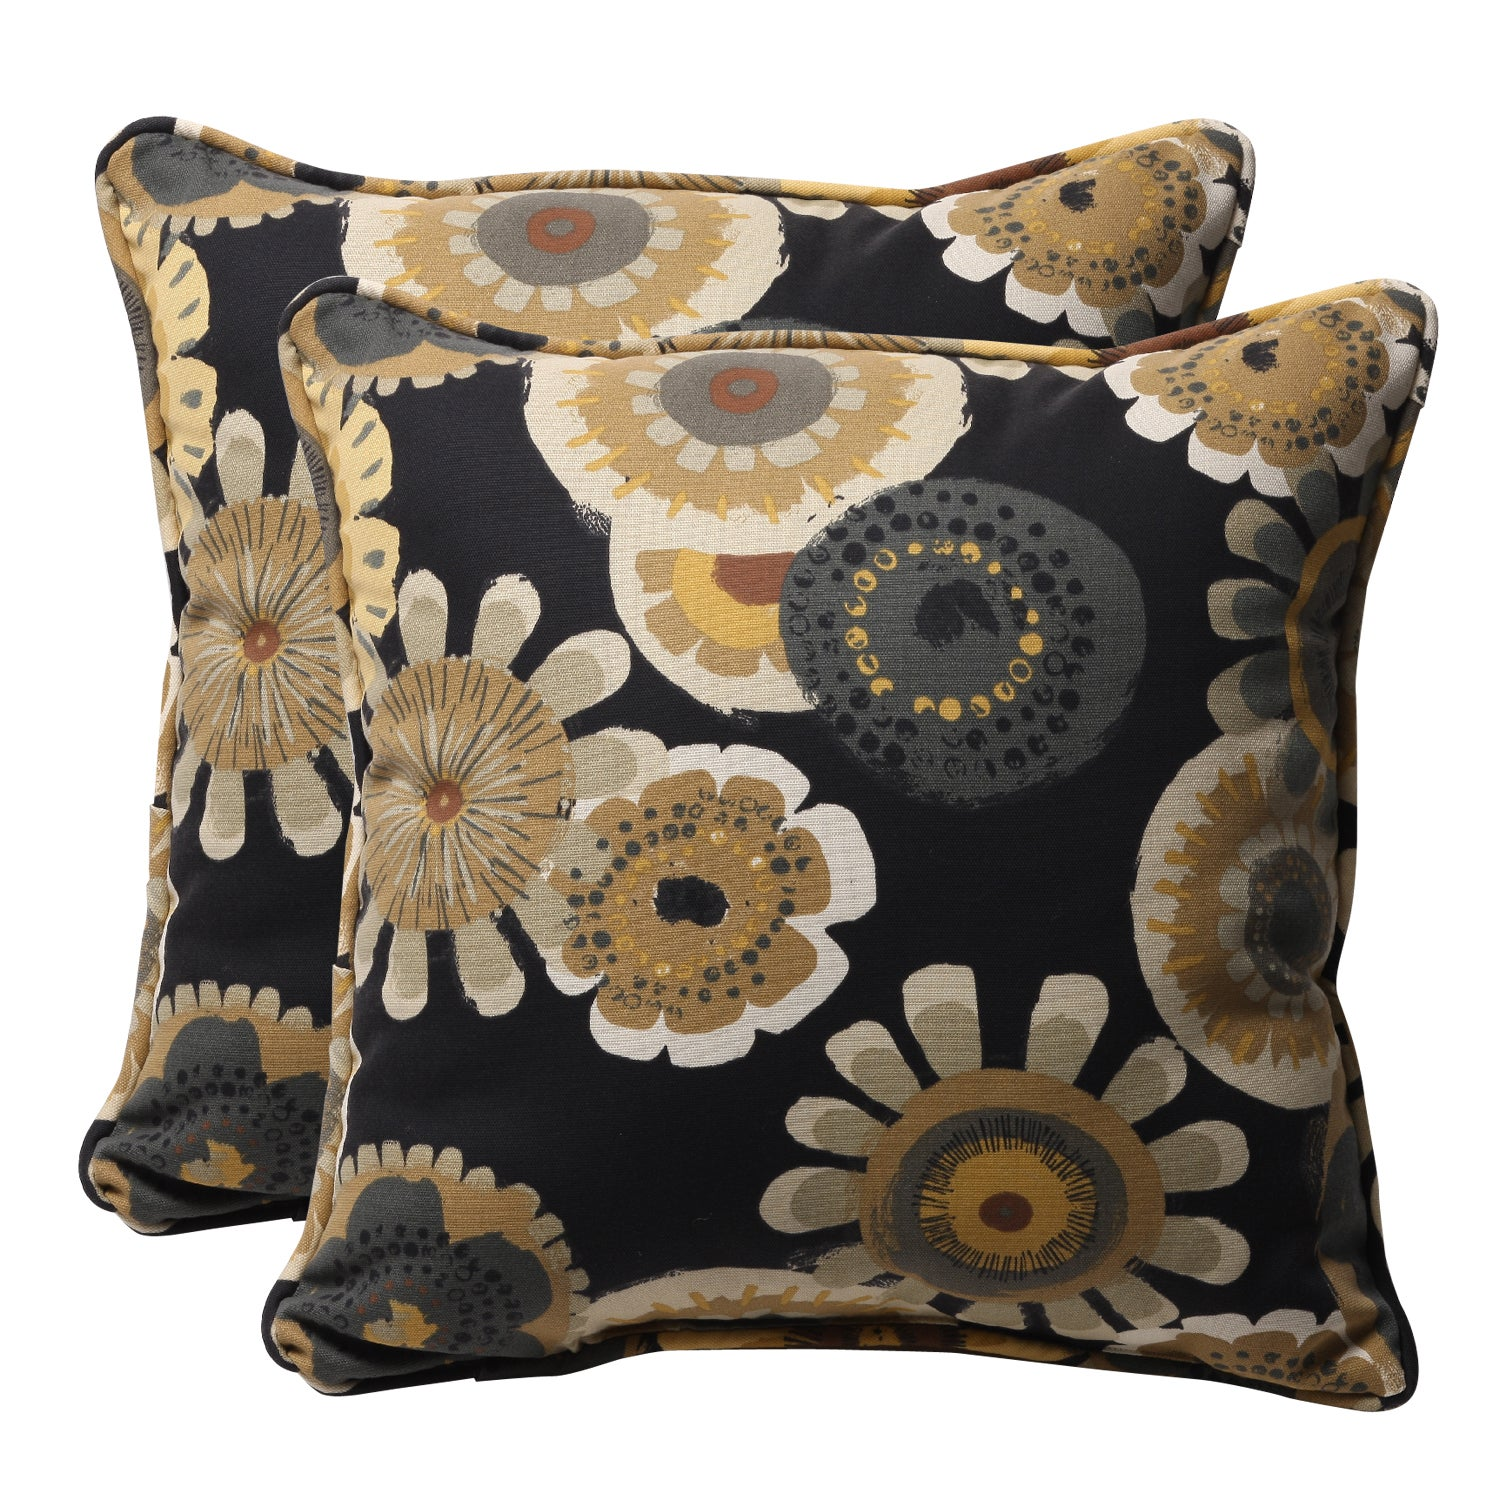 Yellow And Black Decorative Pillows : Decorative Black/ Yellow Floral Square Outdoor Toss Pillows (Set of 2) - Free Shipping Today ...